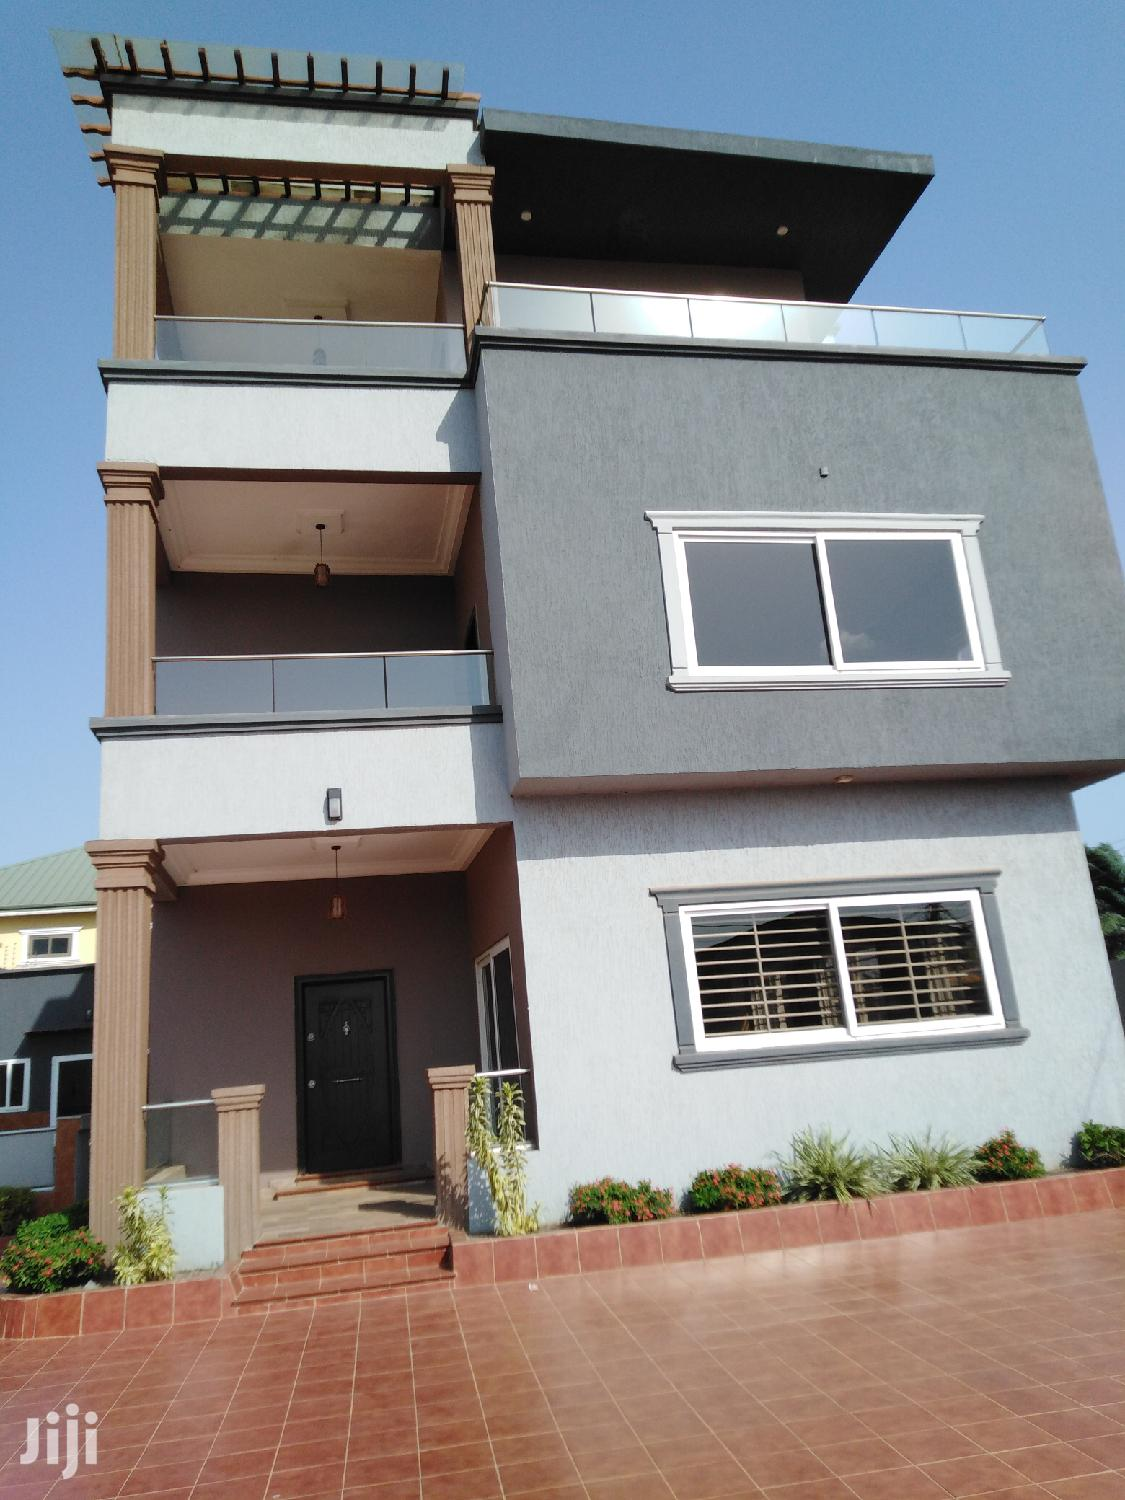 5BRMS With A Penthouse And Rooftop Patio For Sale At Airport